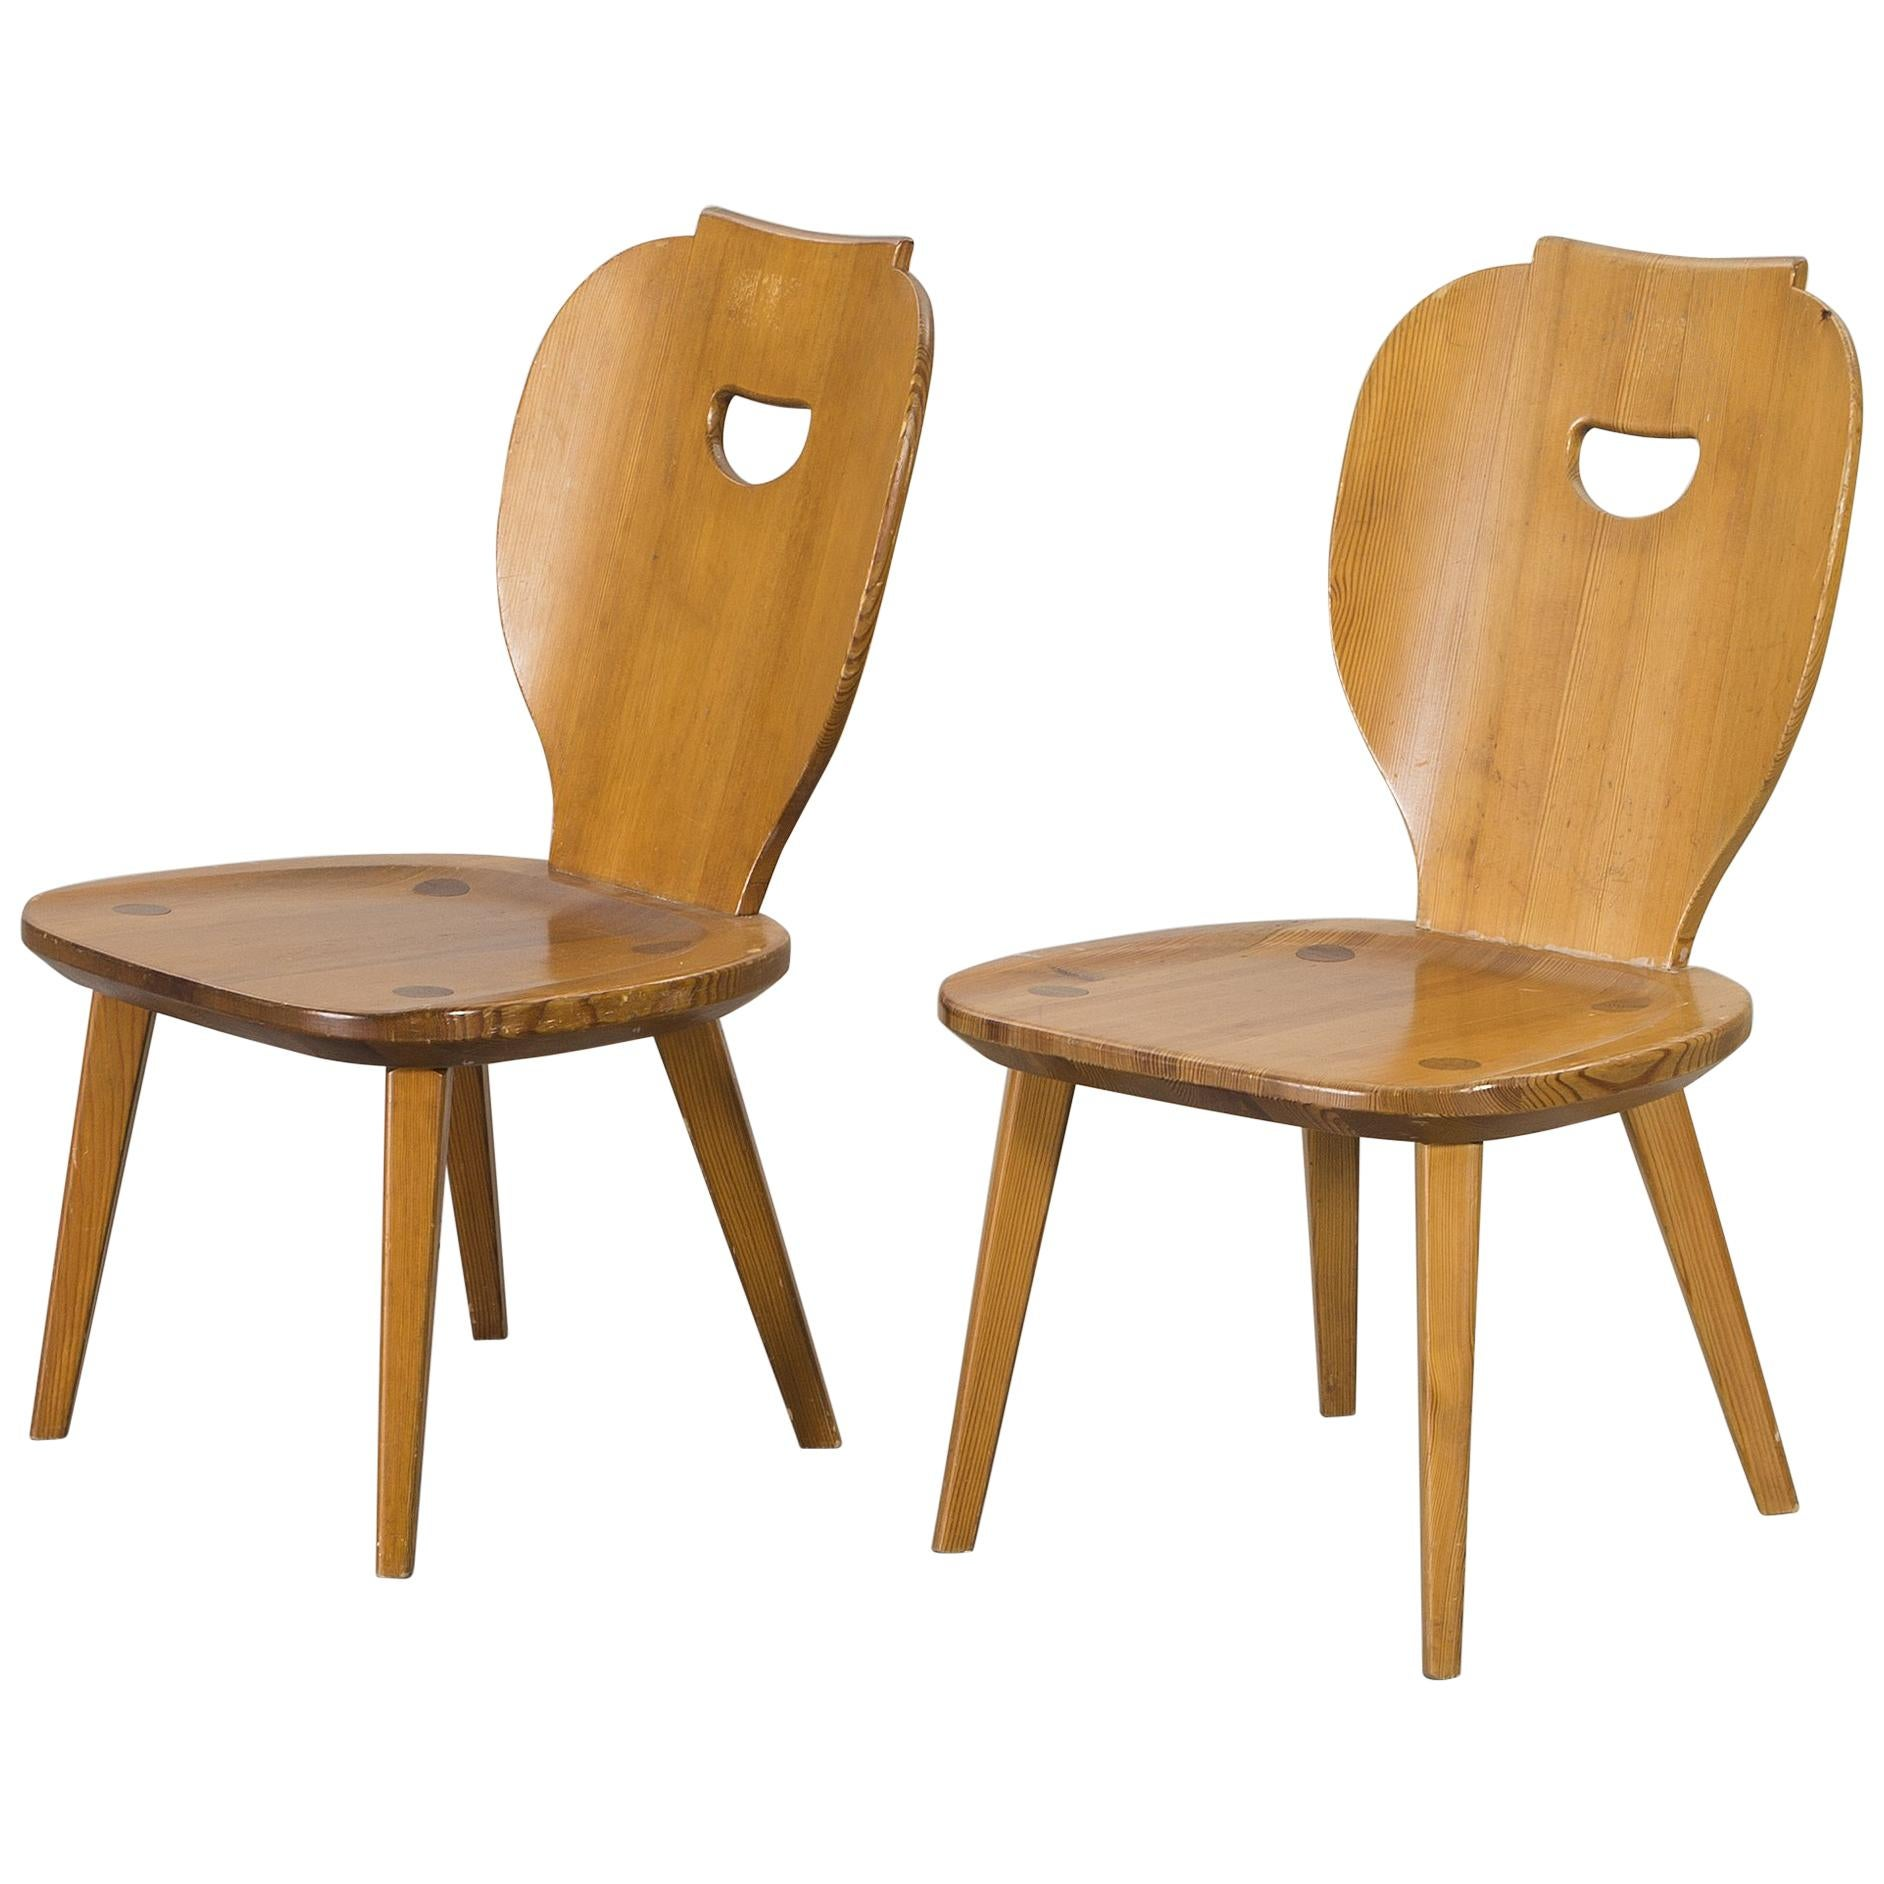 2 Pine Chairs Carl Malmsten Sweden 1953 For Sale  sc 1 st  1stDibs & 2 Pine Chairs Carl Malmsten Sweden 1953 For Sale at 1stdibs